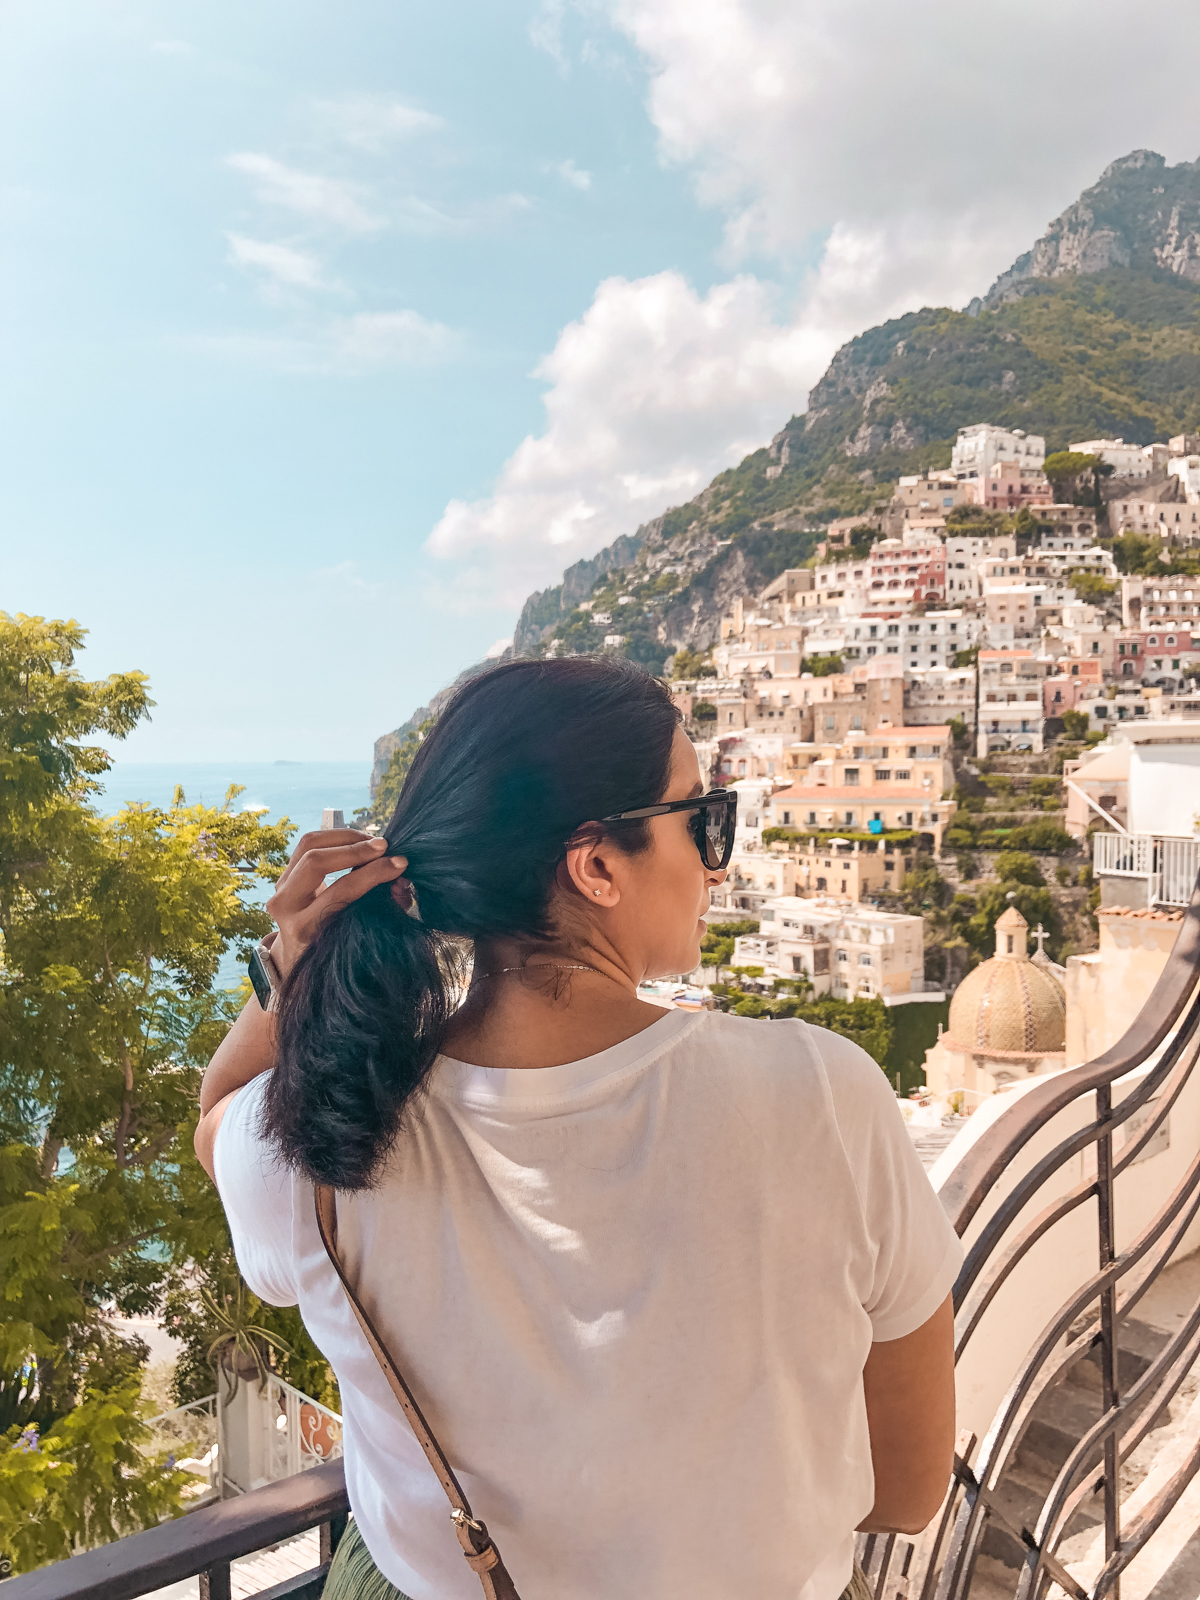 me looking out at the city of Positano from the top